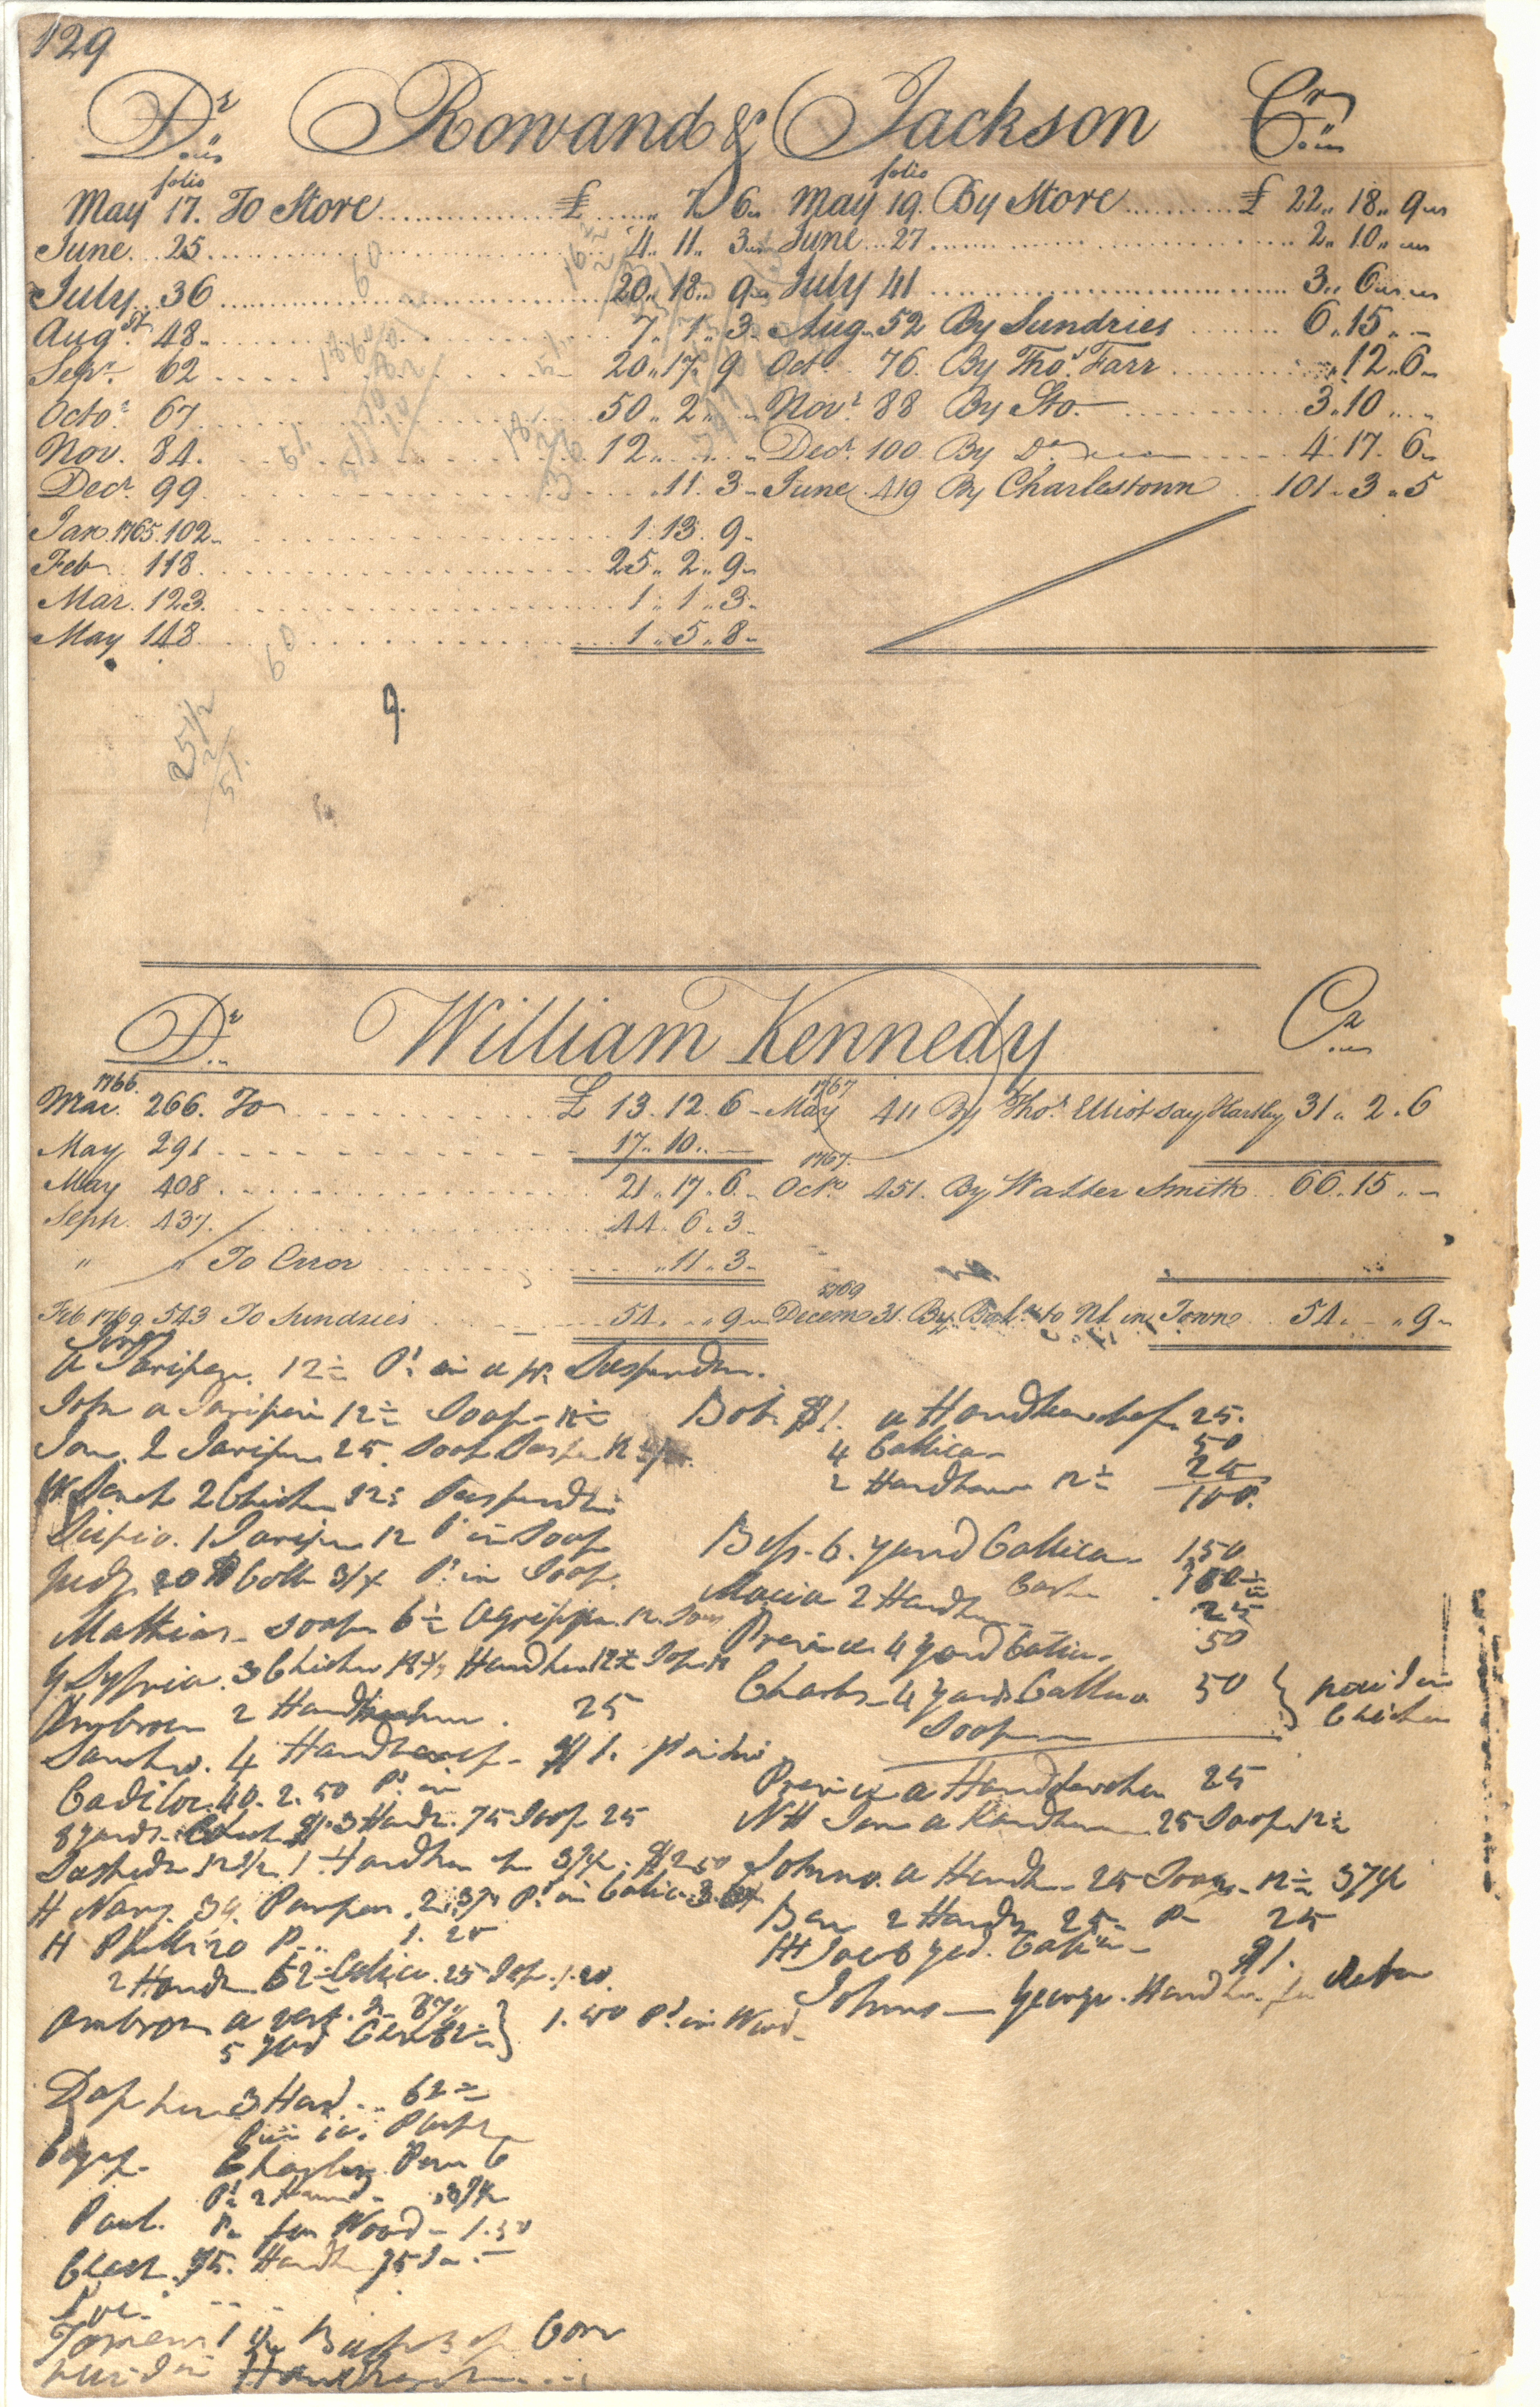 Plowden Weston's Business Ledger, page 129